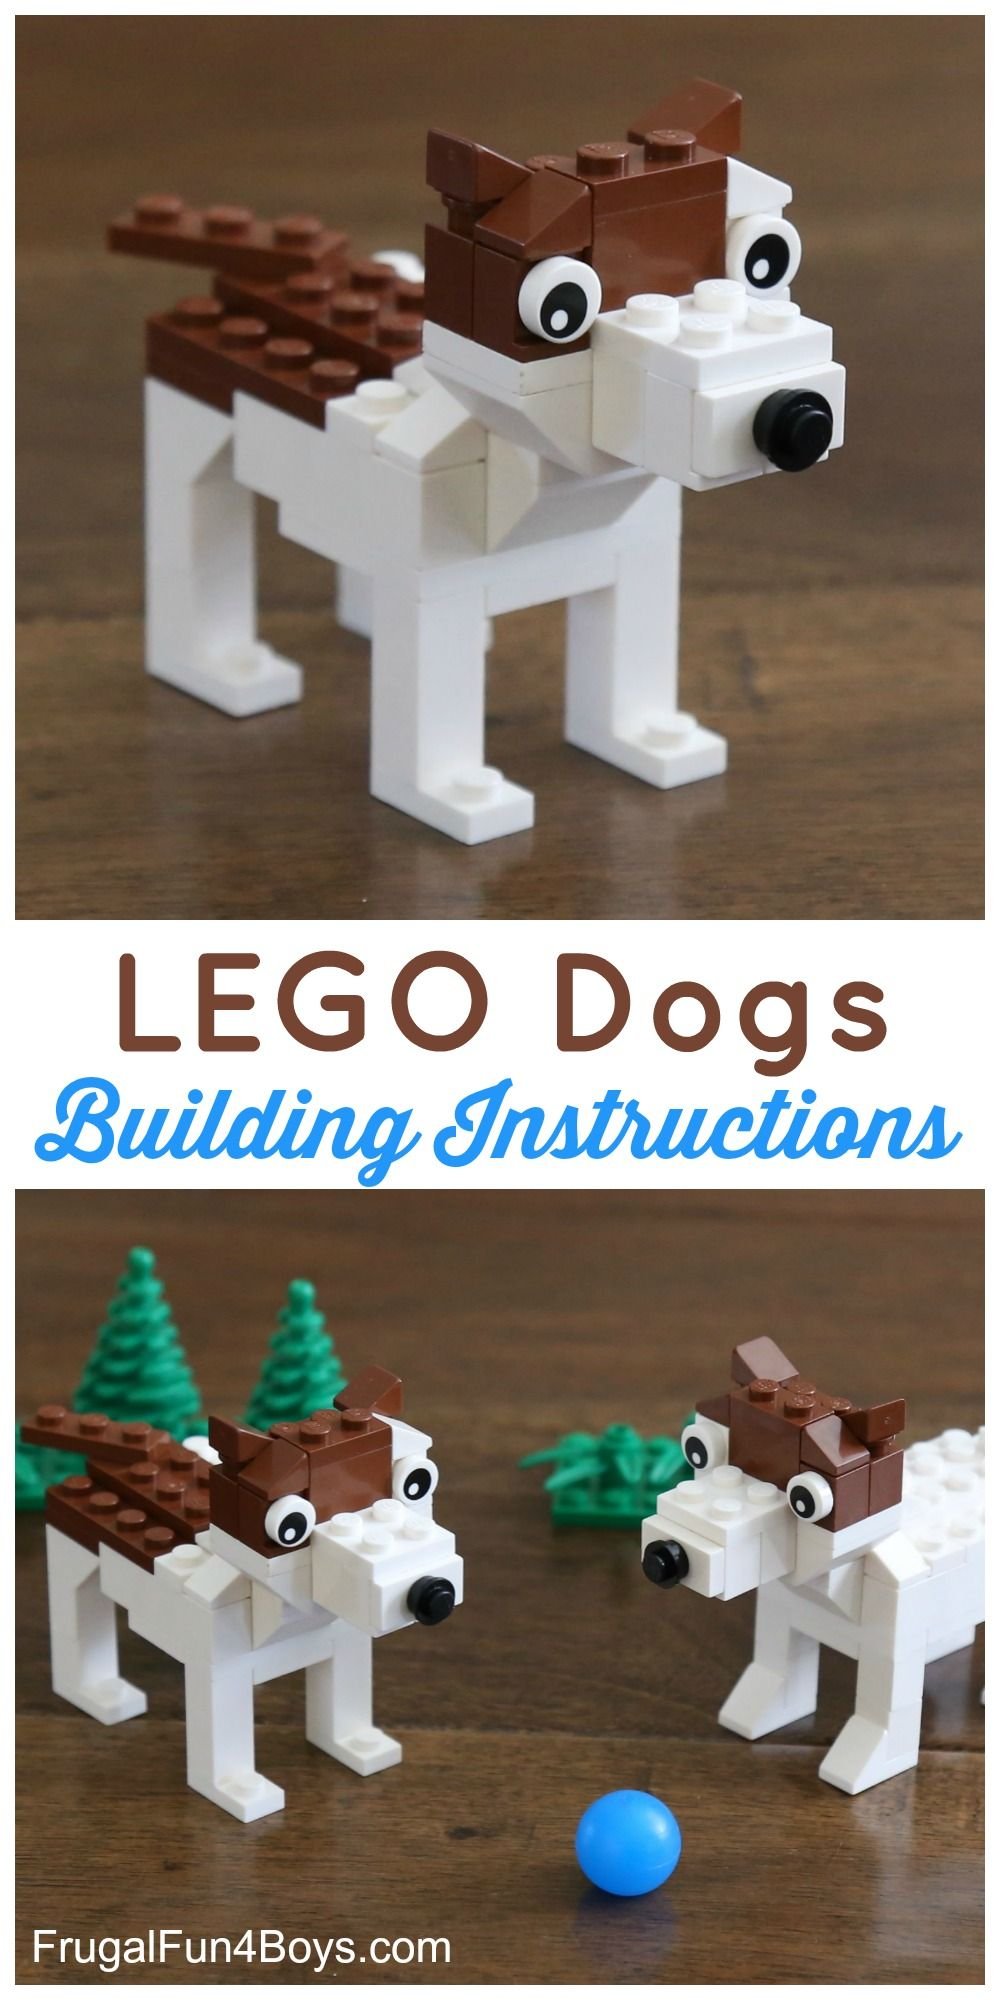 Build A Terrier Dog With Lego Bricks Lego Dog Lego For Kids